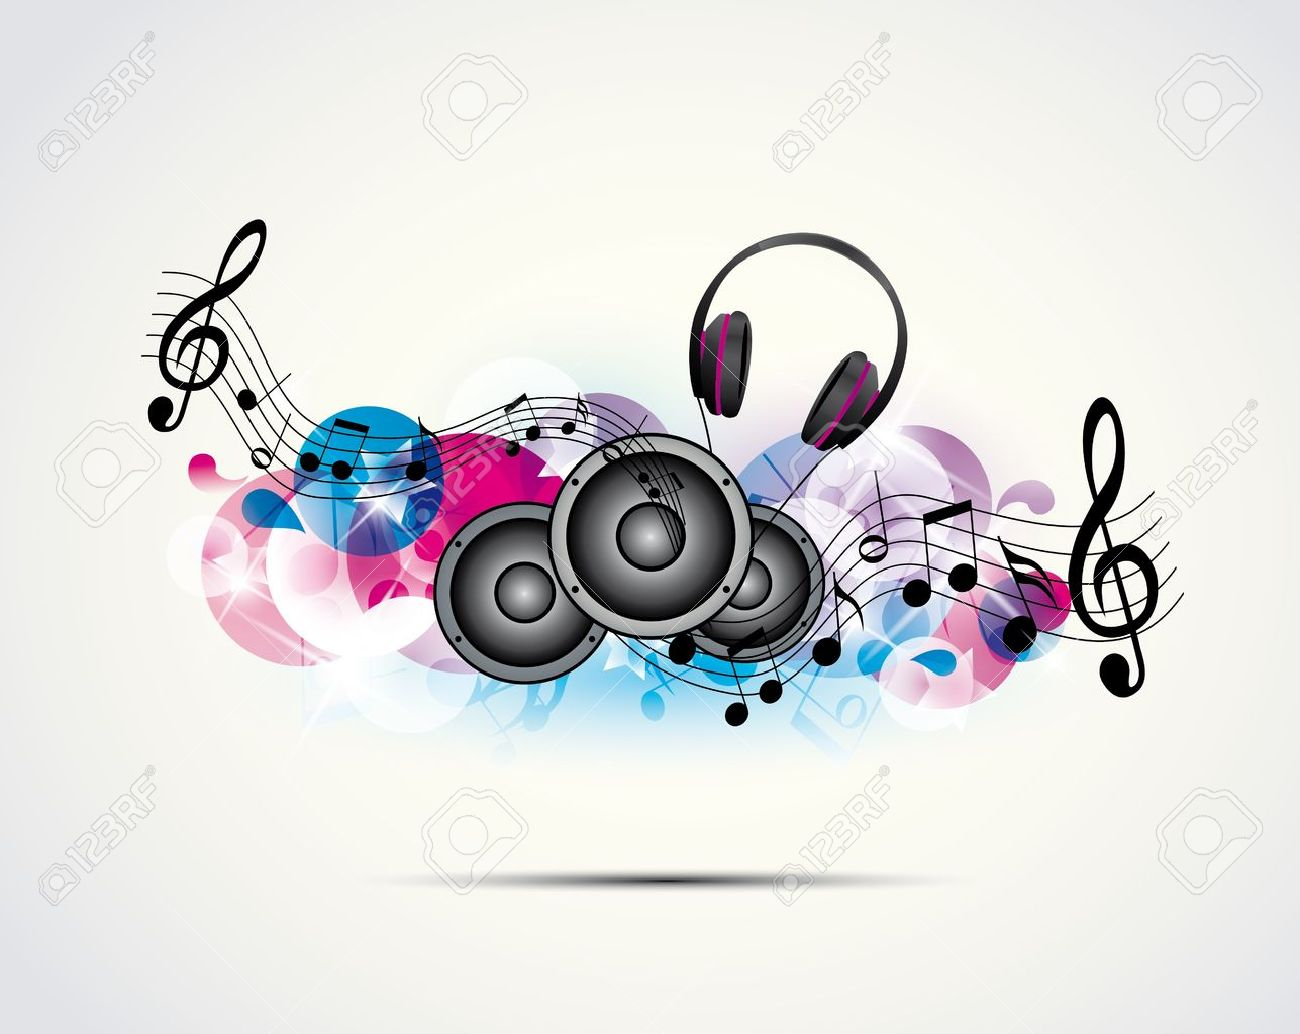 HÌNH NHẠC 14398392-colored-background-music-with-headphones-and-speakers-Stock-Vector